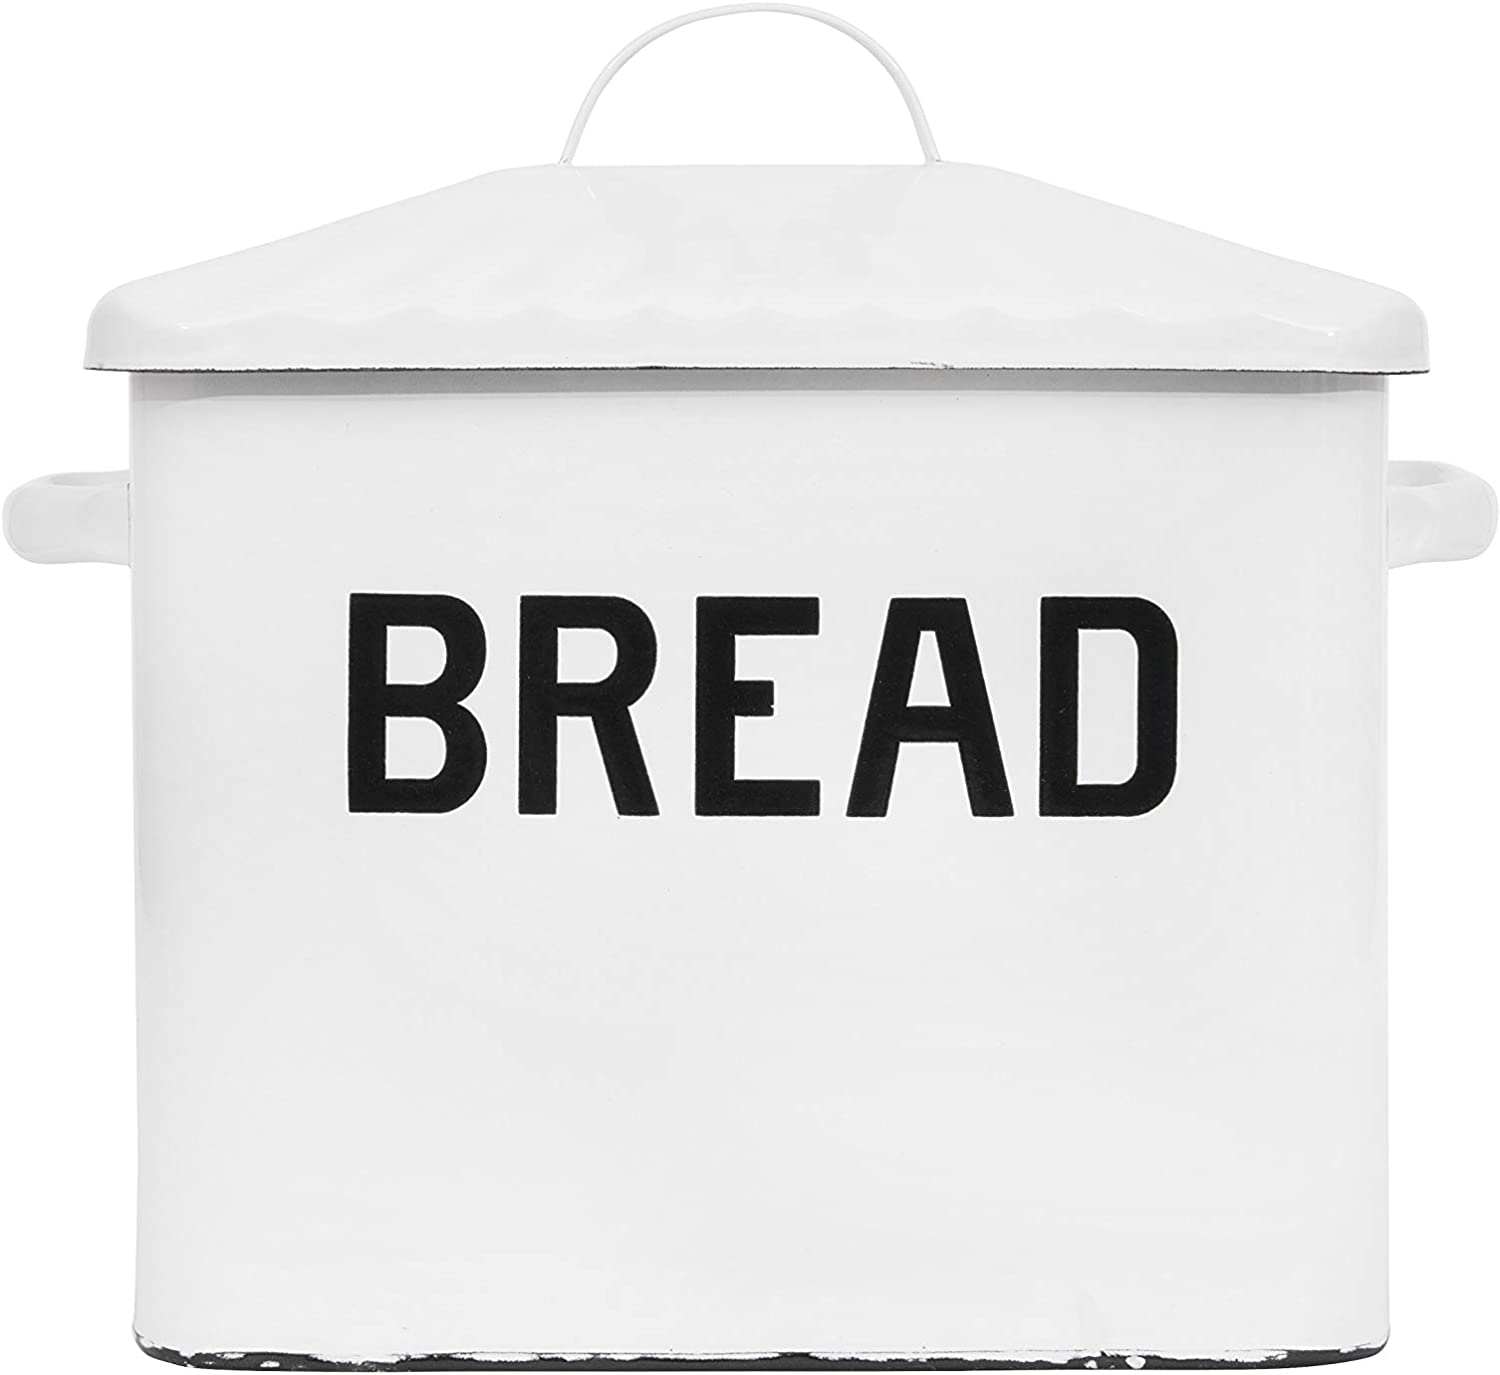 Shop Creative Co-op Enameled Metal Distressed Bread Box with Lid from Amazon on Openhaus